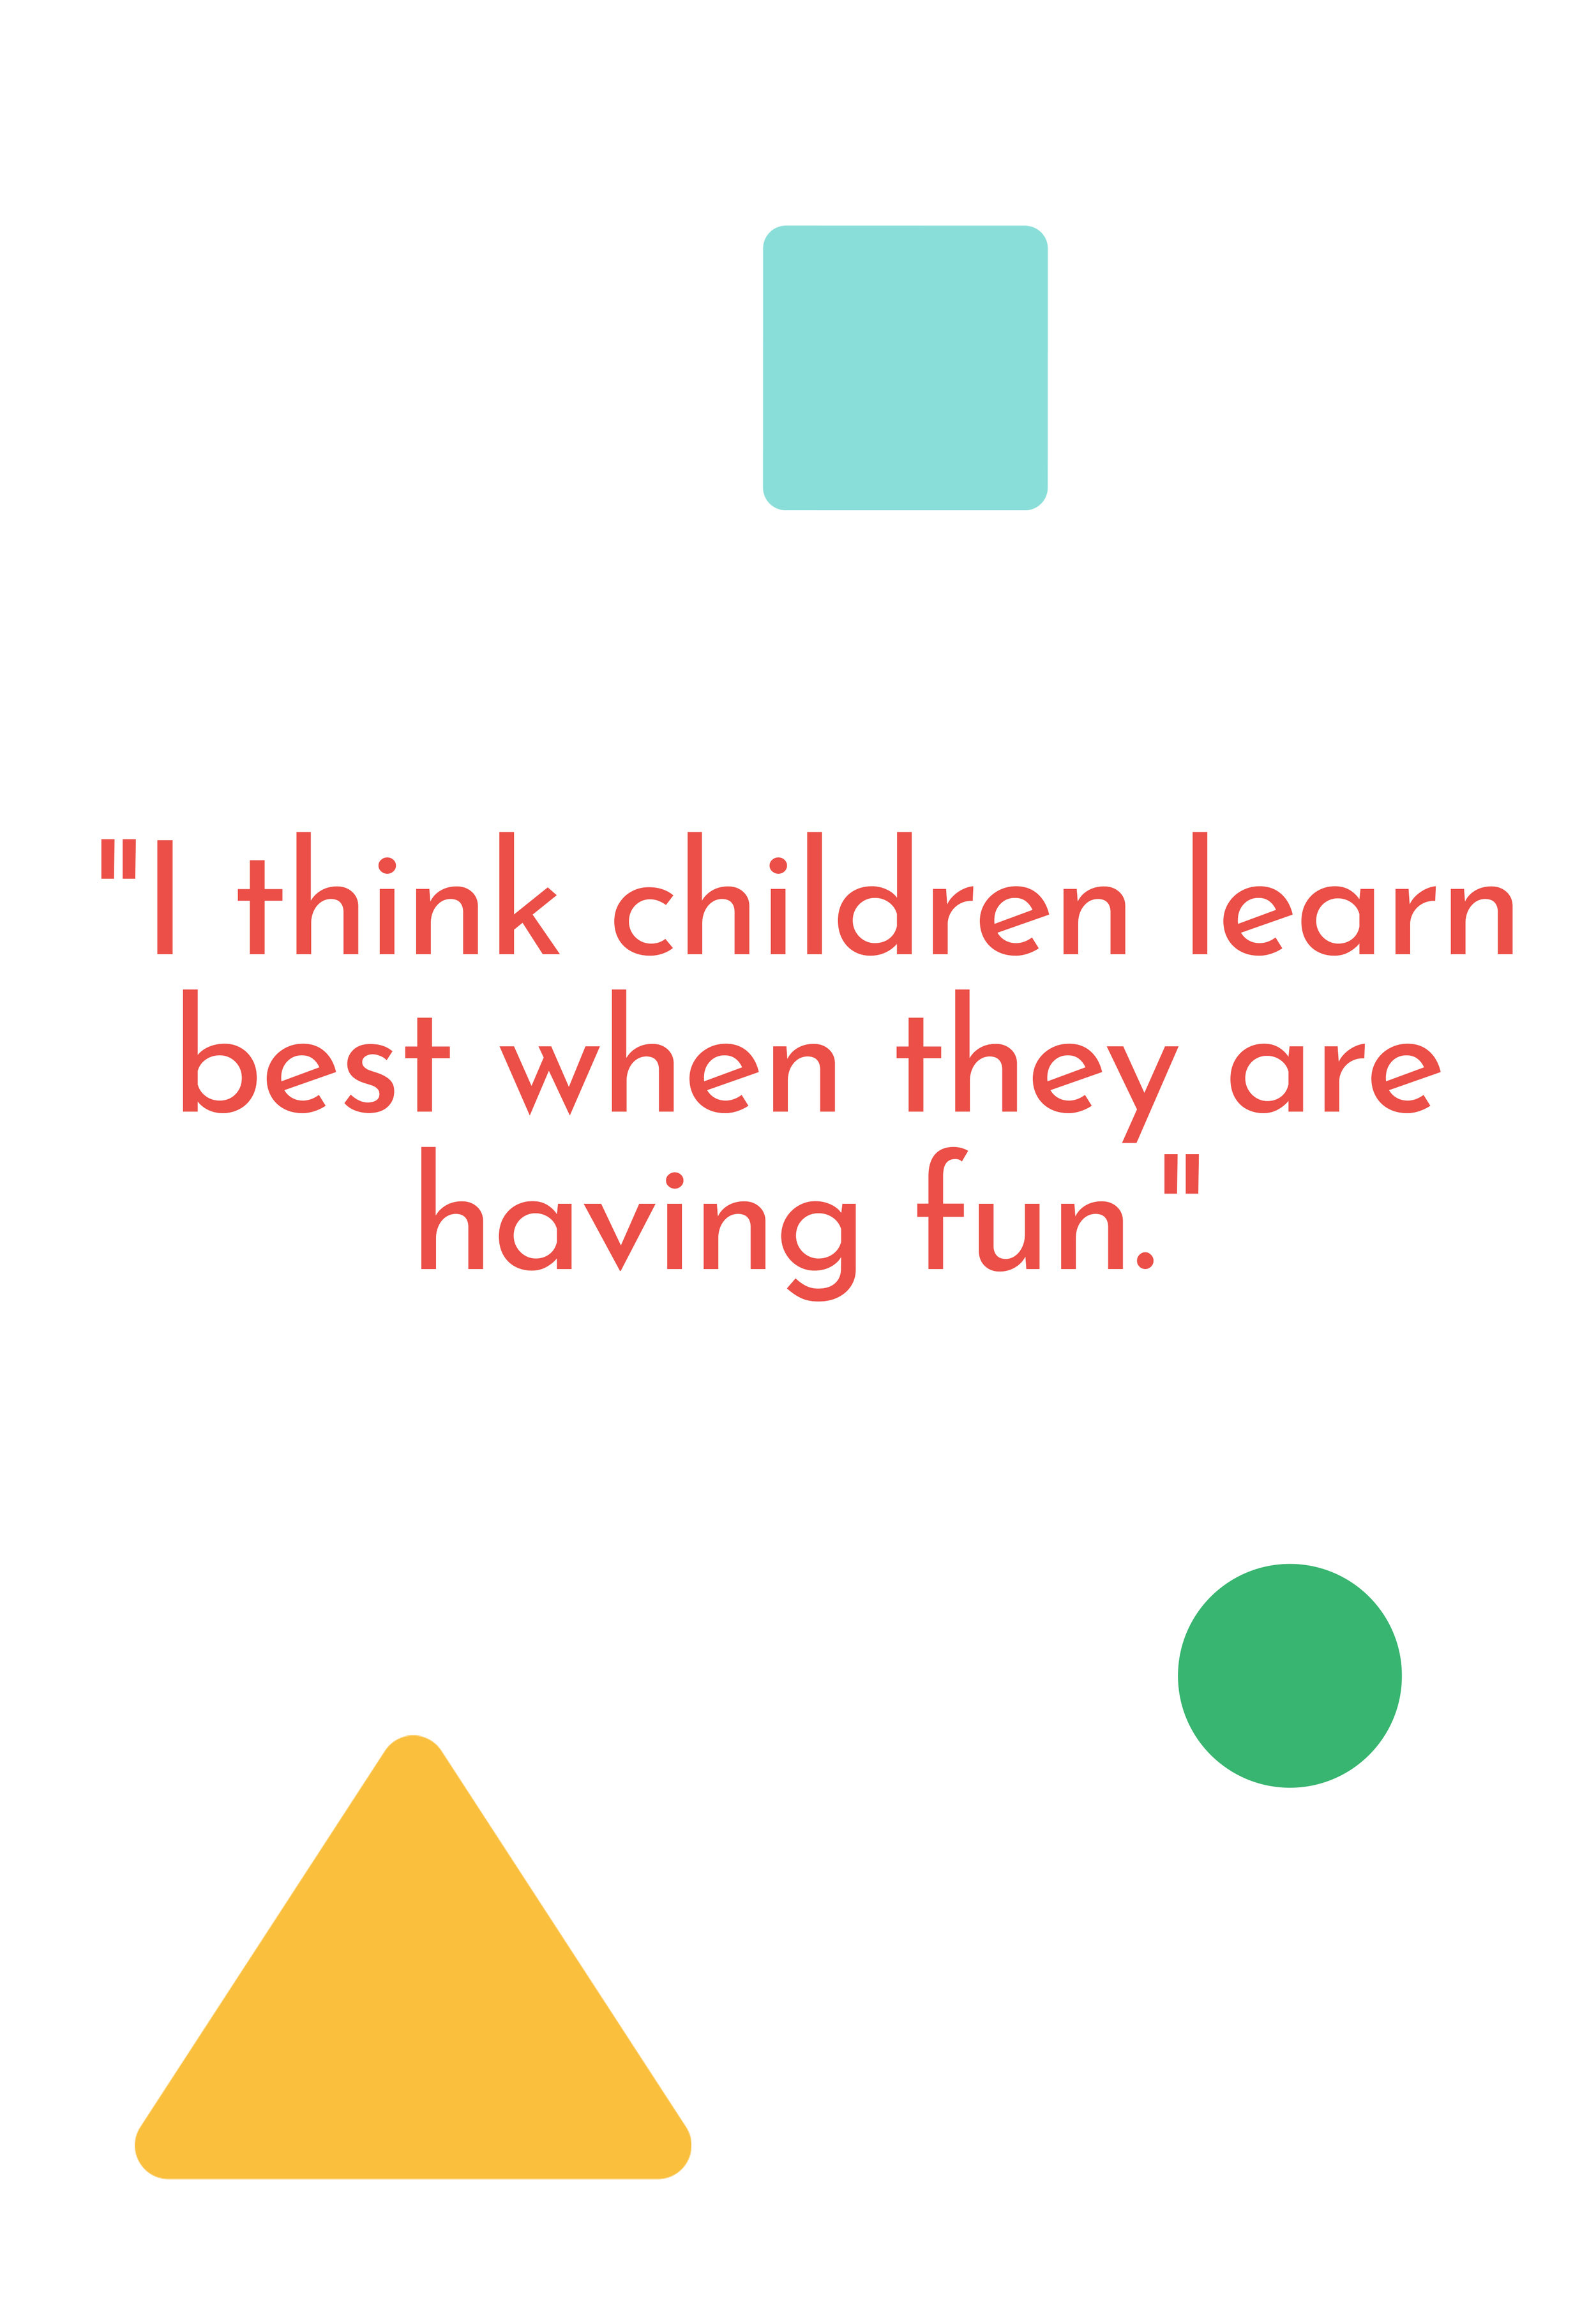 """""""I think children learn best when they are having fun."""" - Ms. Amanda applies this learning to her daycare in Peabody, MA."""